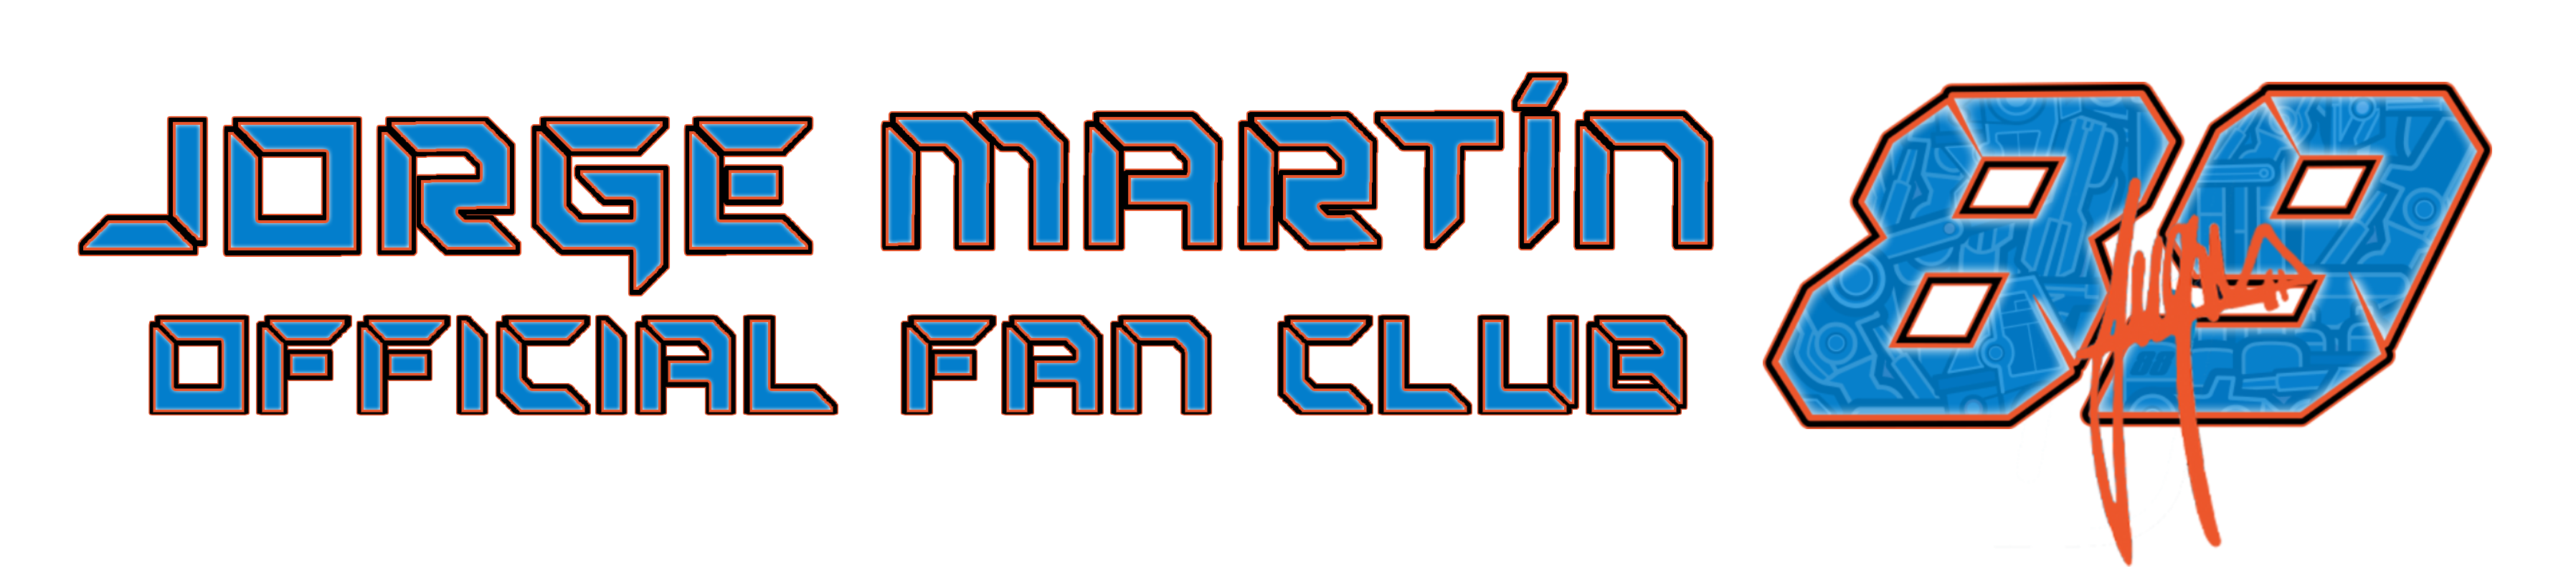 Logo Fan Club Jorge Martín 88